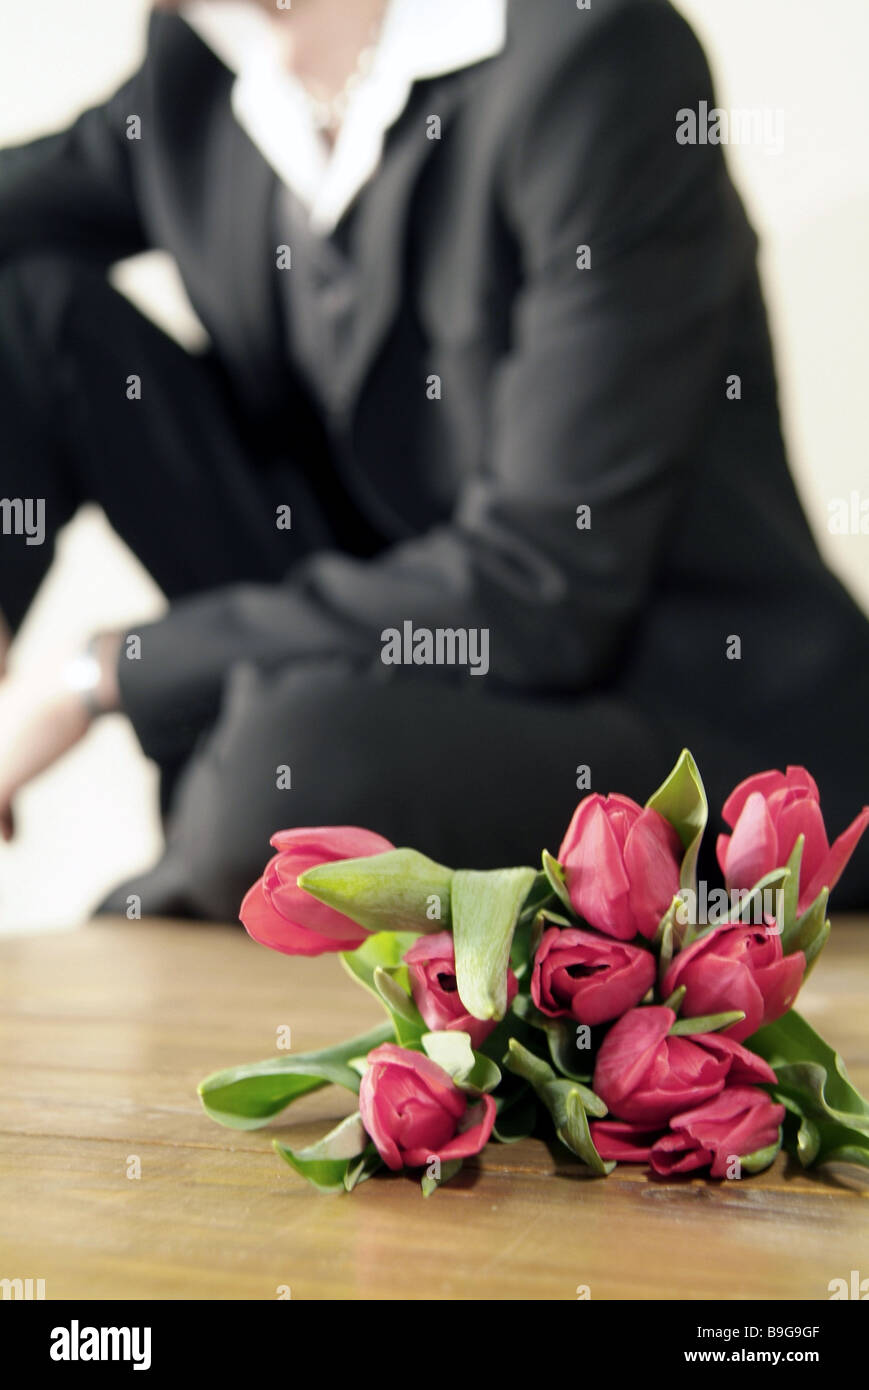 Apology flowers stock photos apology flowers stock images alamy sits man suit flower bouquet waits broached series people rendezvous falling in love flowers tulips izmirmasajfo